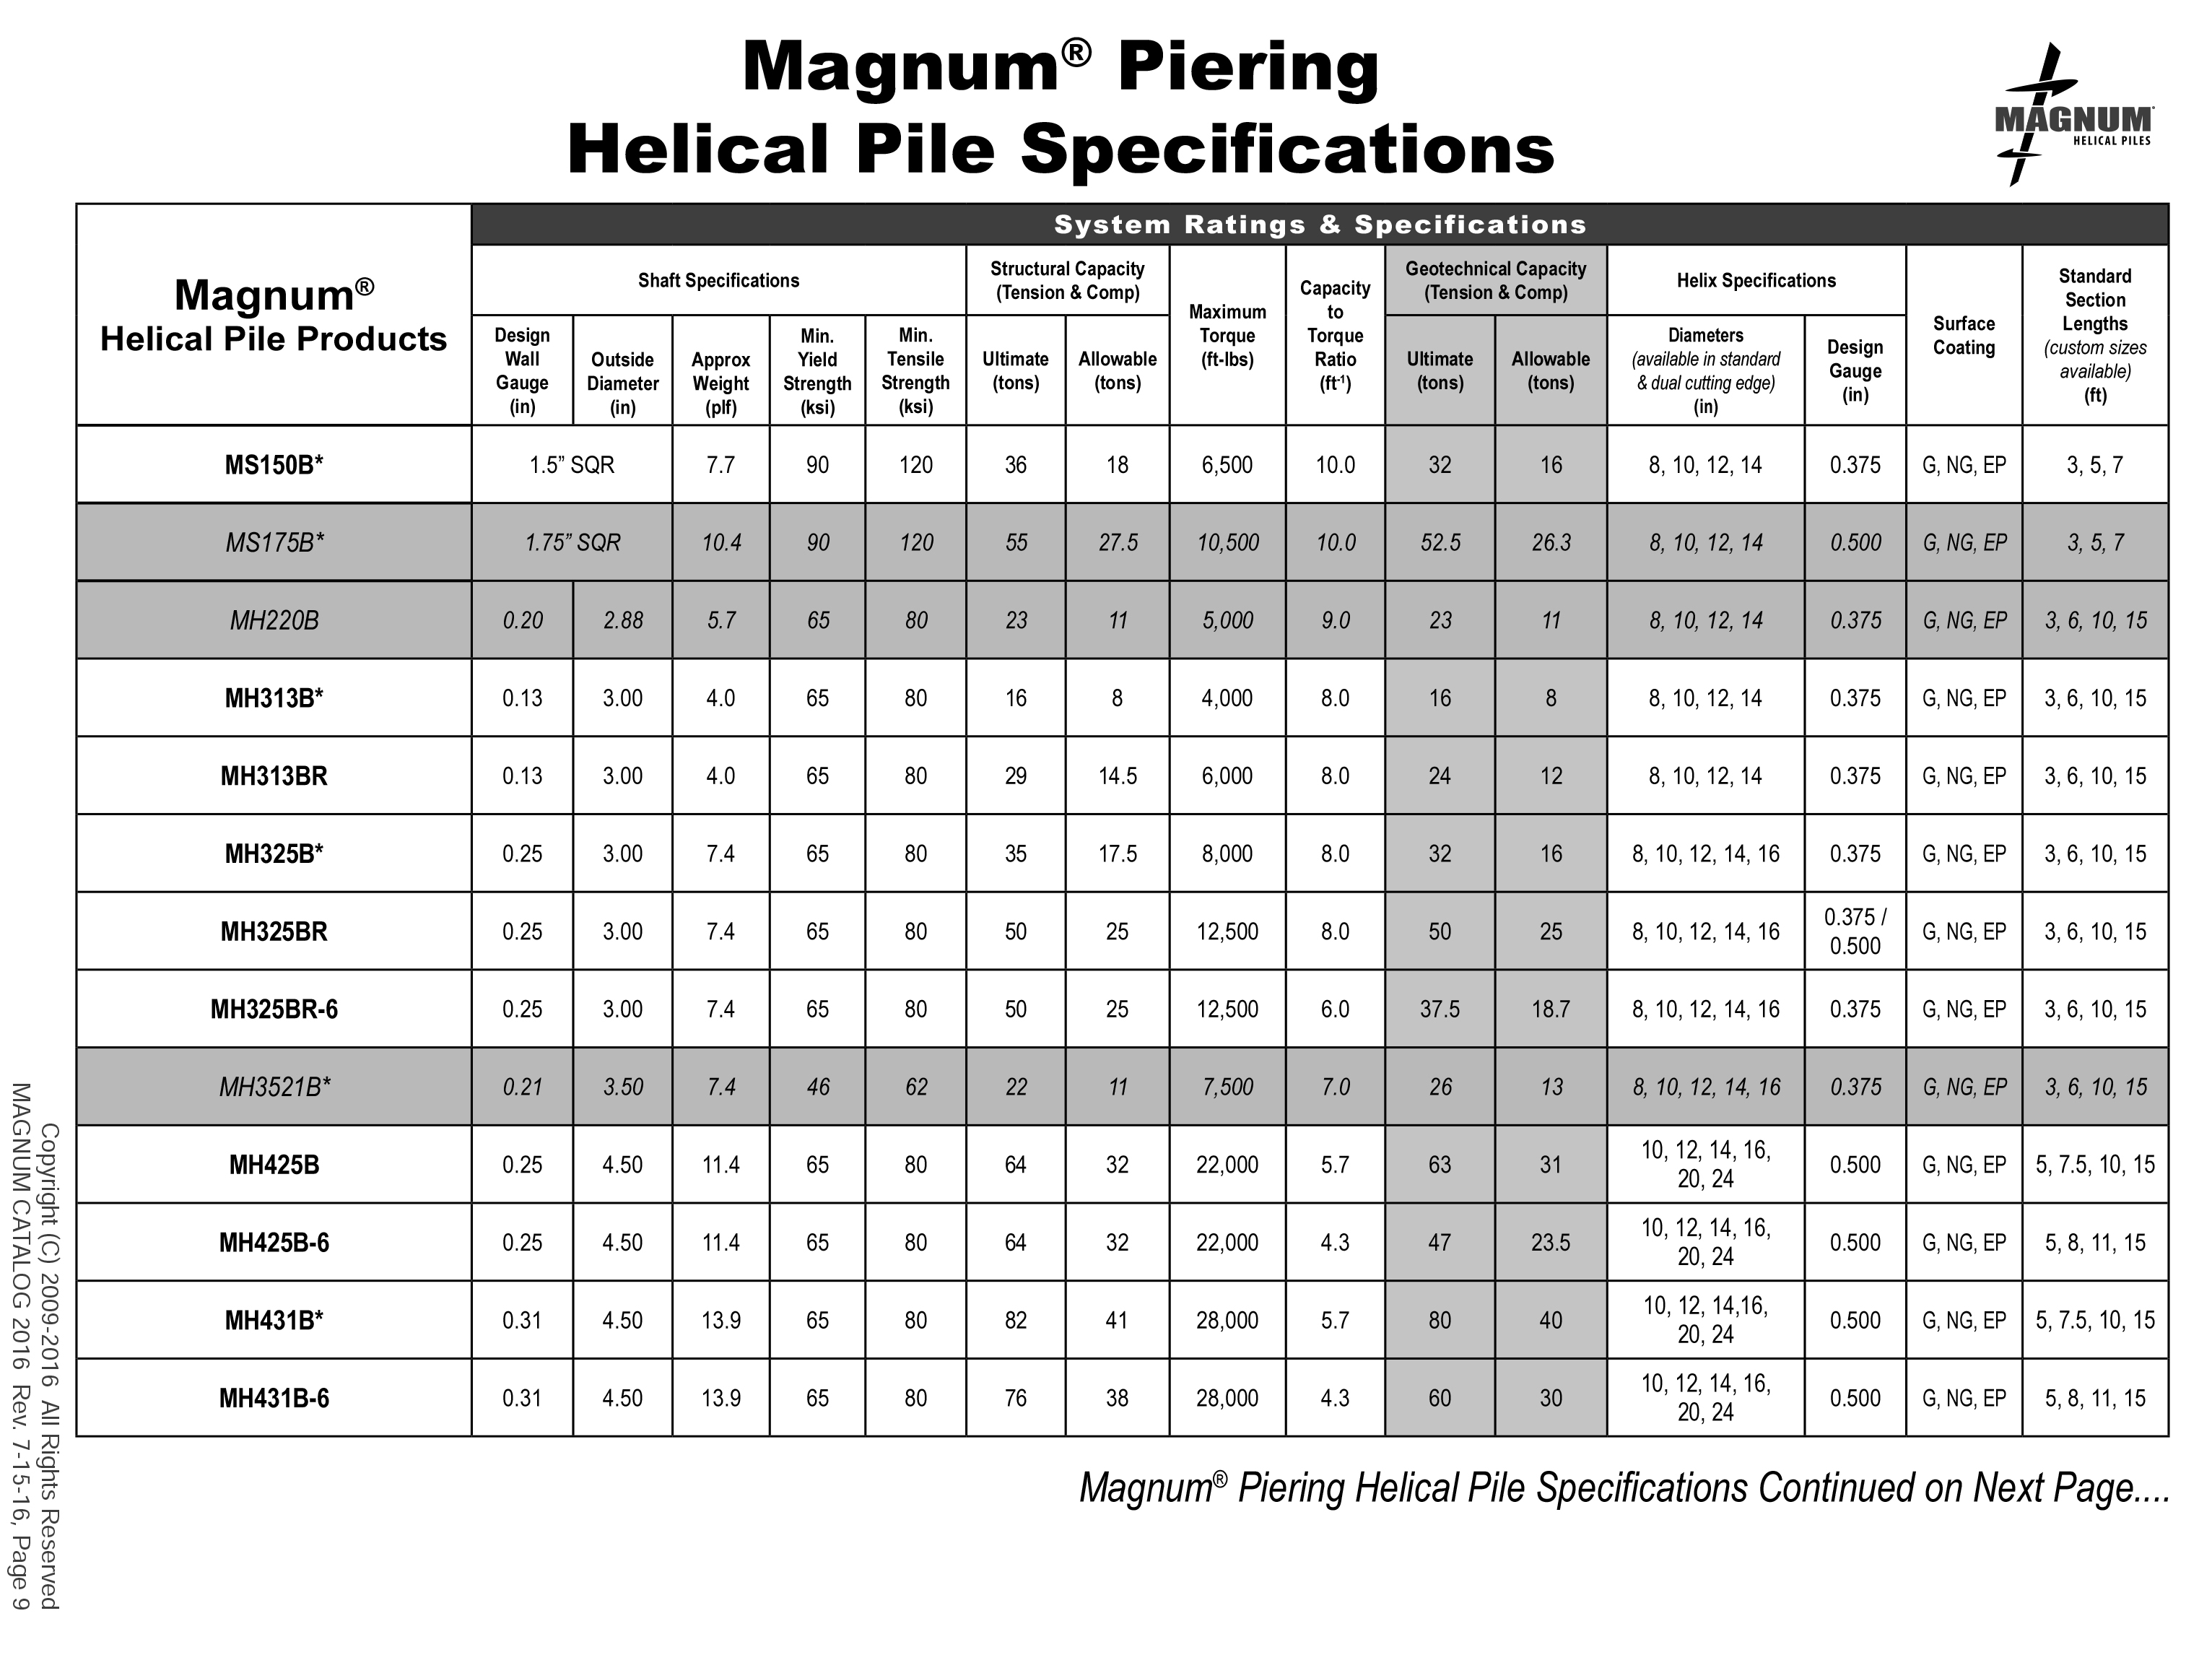 Magnum Helical Pile Specifications Table System Ratings